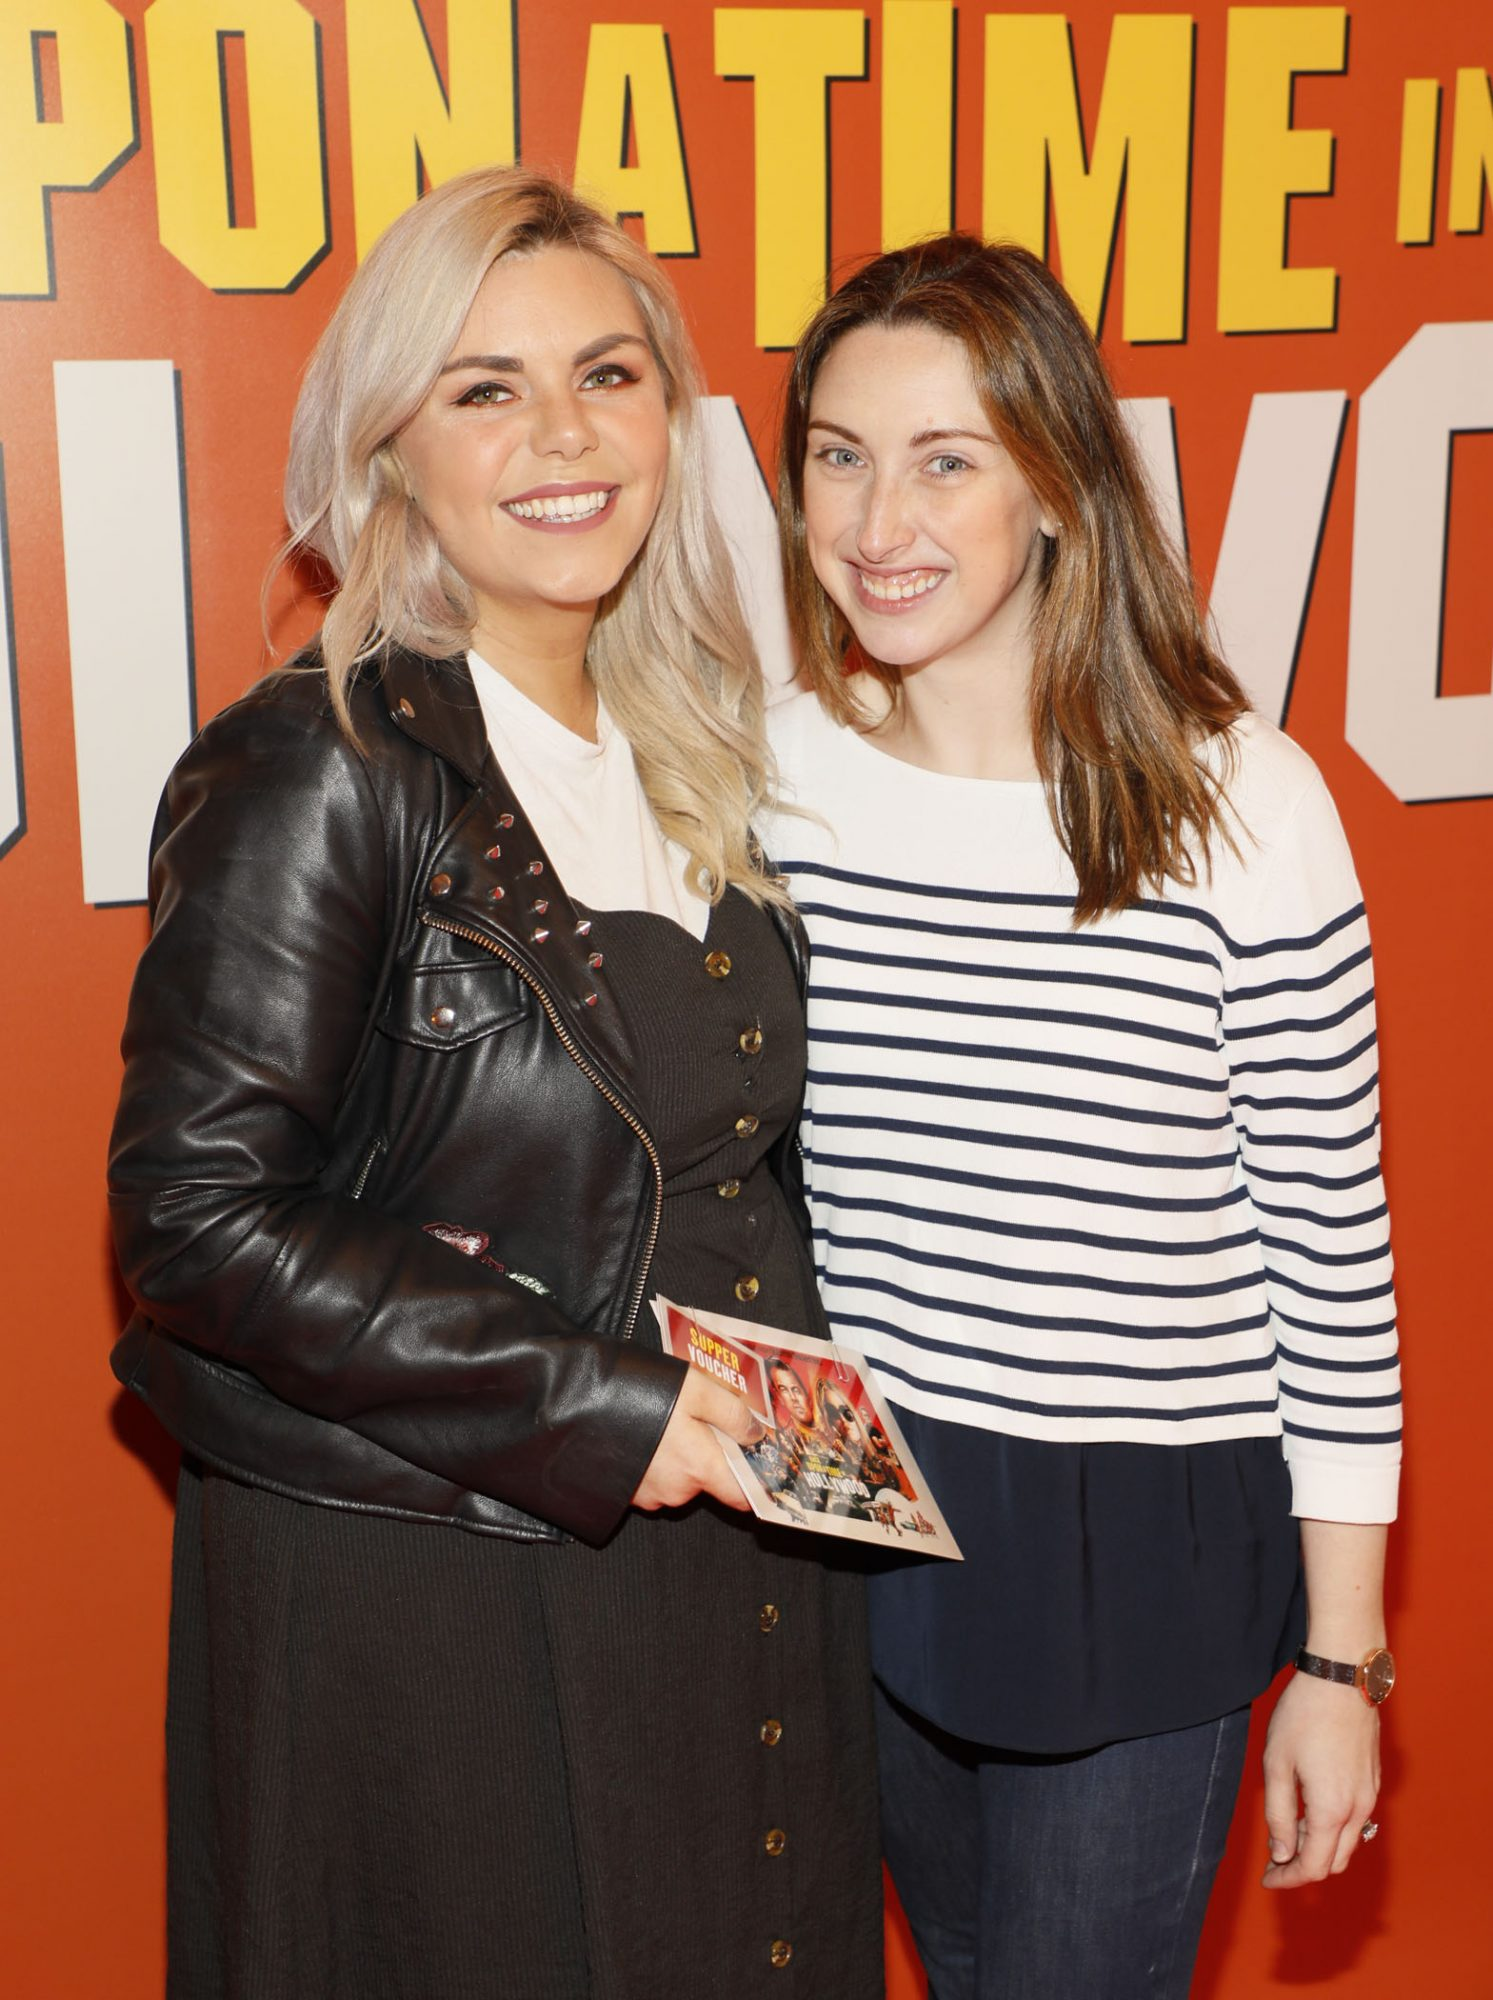 Hannah Aspil and Jacqueline Lacy at the Multimedia Screening of Once Upon A Time In Hollywood at the Stella Theatre, Rathmines, in cinema August 14th. Photo: Kieran Harnett